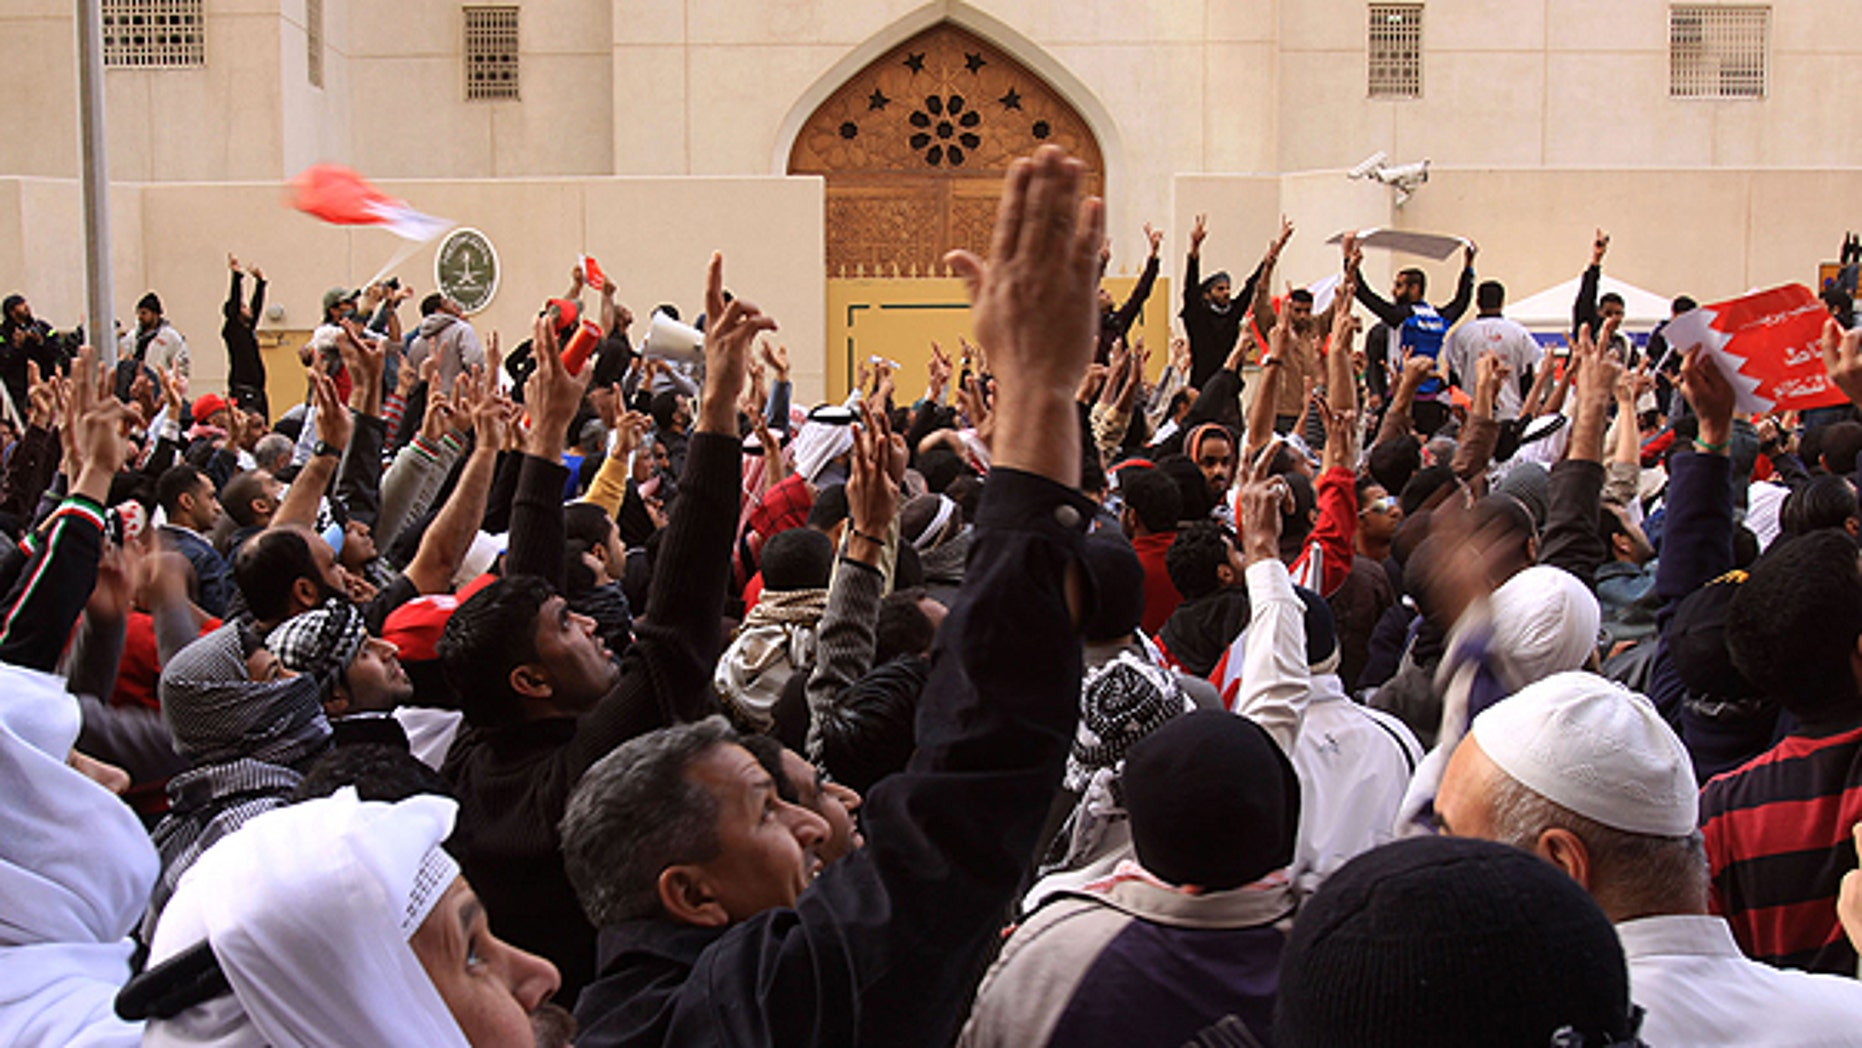 March 15: Anti-government protesters gesture in front of the Saudi embassy in Manama, Bahrain.